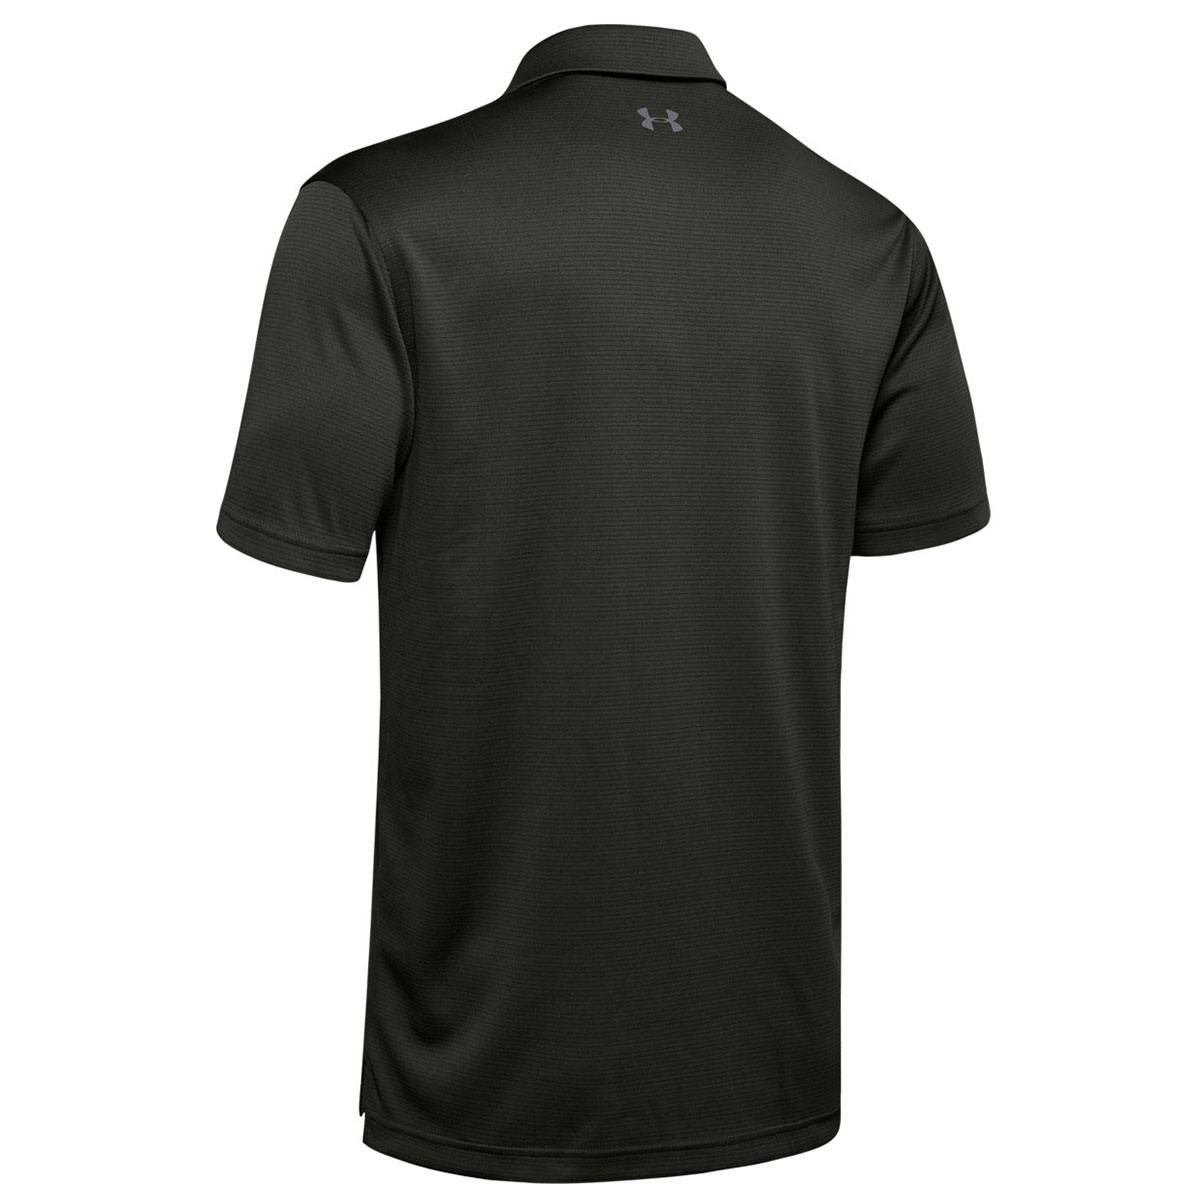 Under-Armour-Mens-Golf-Tech-Wicking-Textured-Soft-Light-Polo-Shirt thumbnail 11